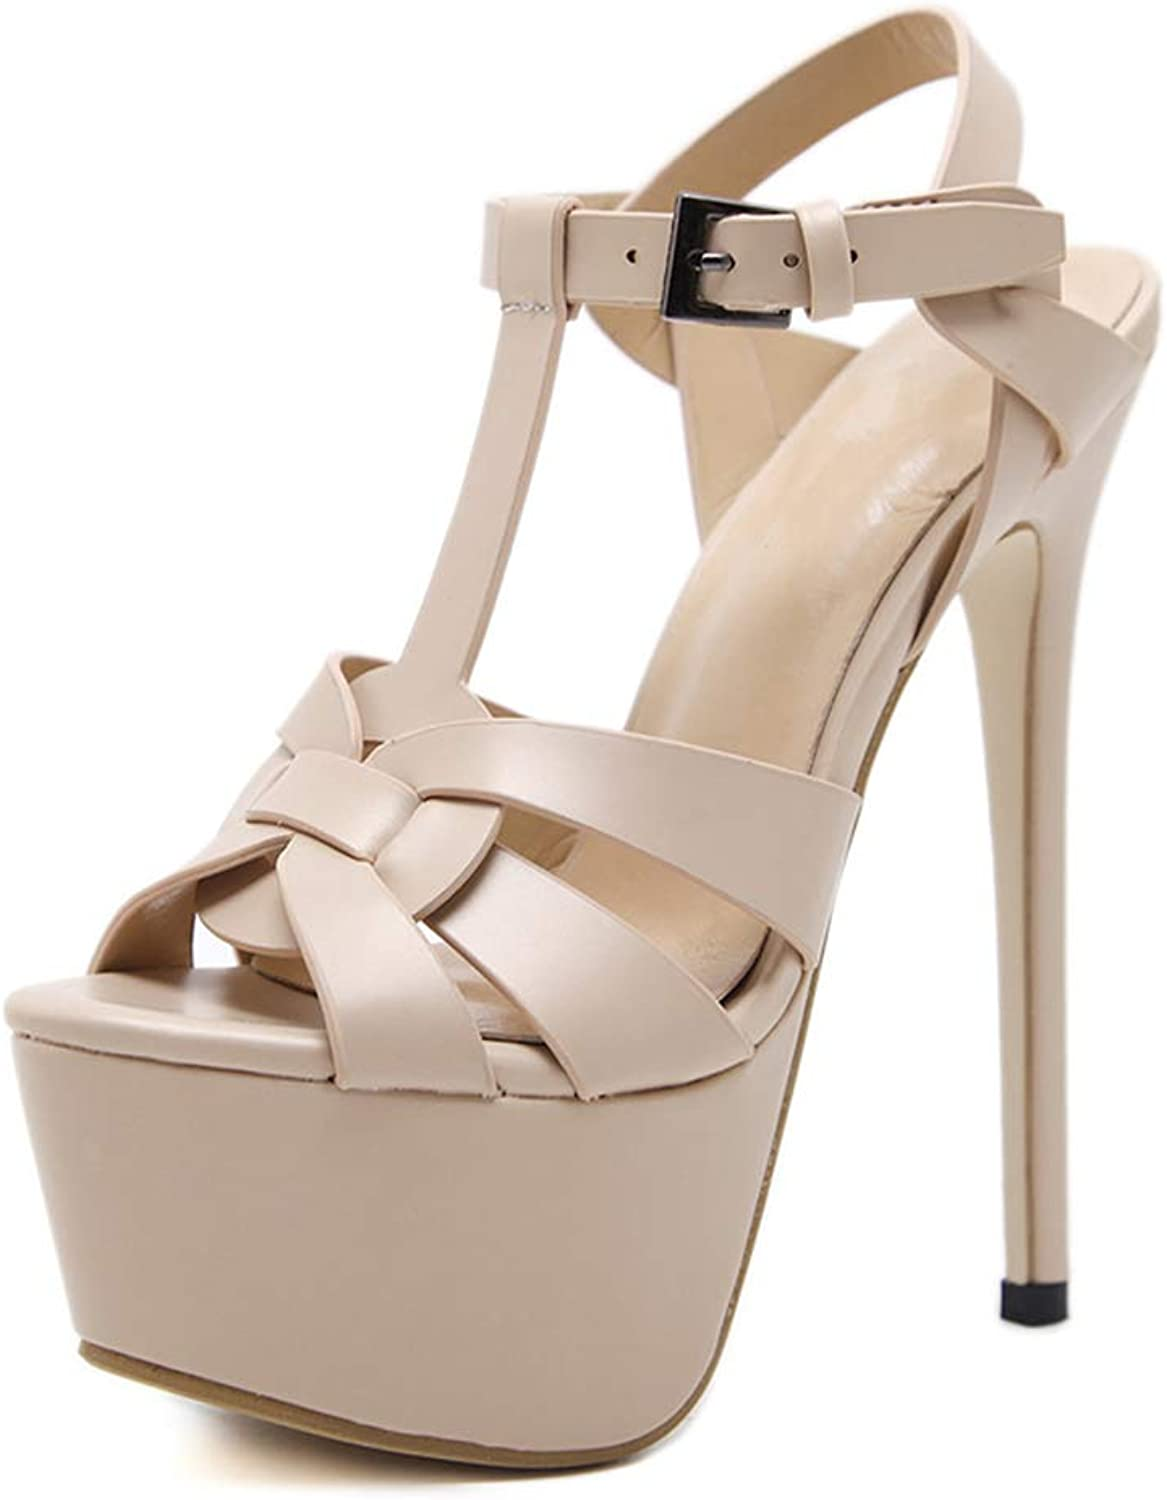 YYZHAO Womens Platform Ankle Strap High Heel